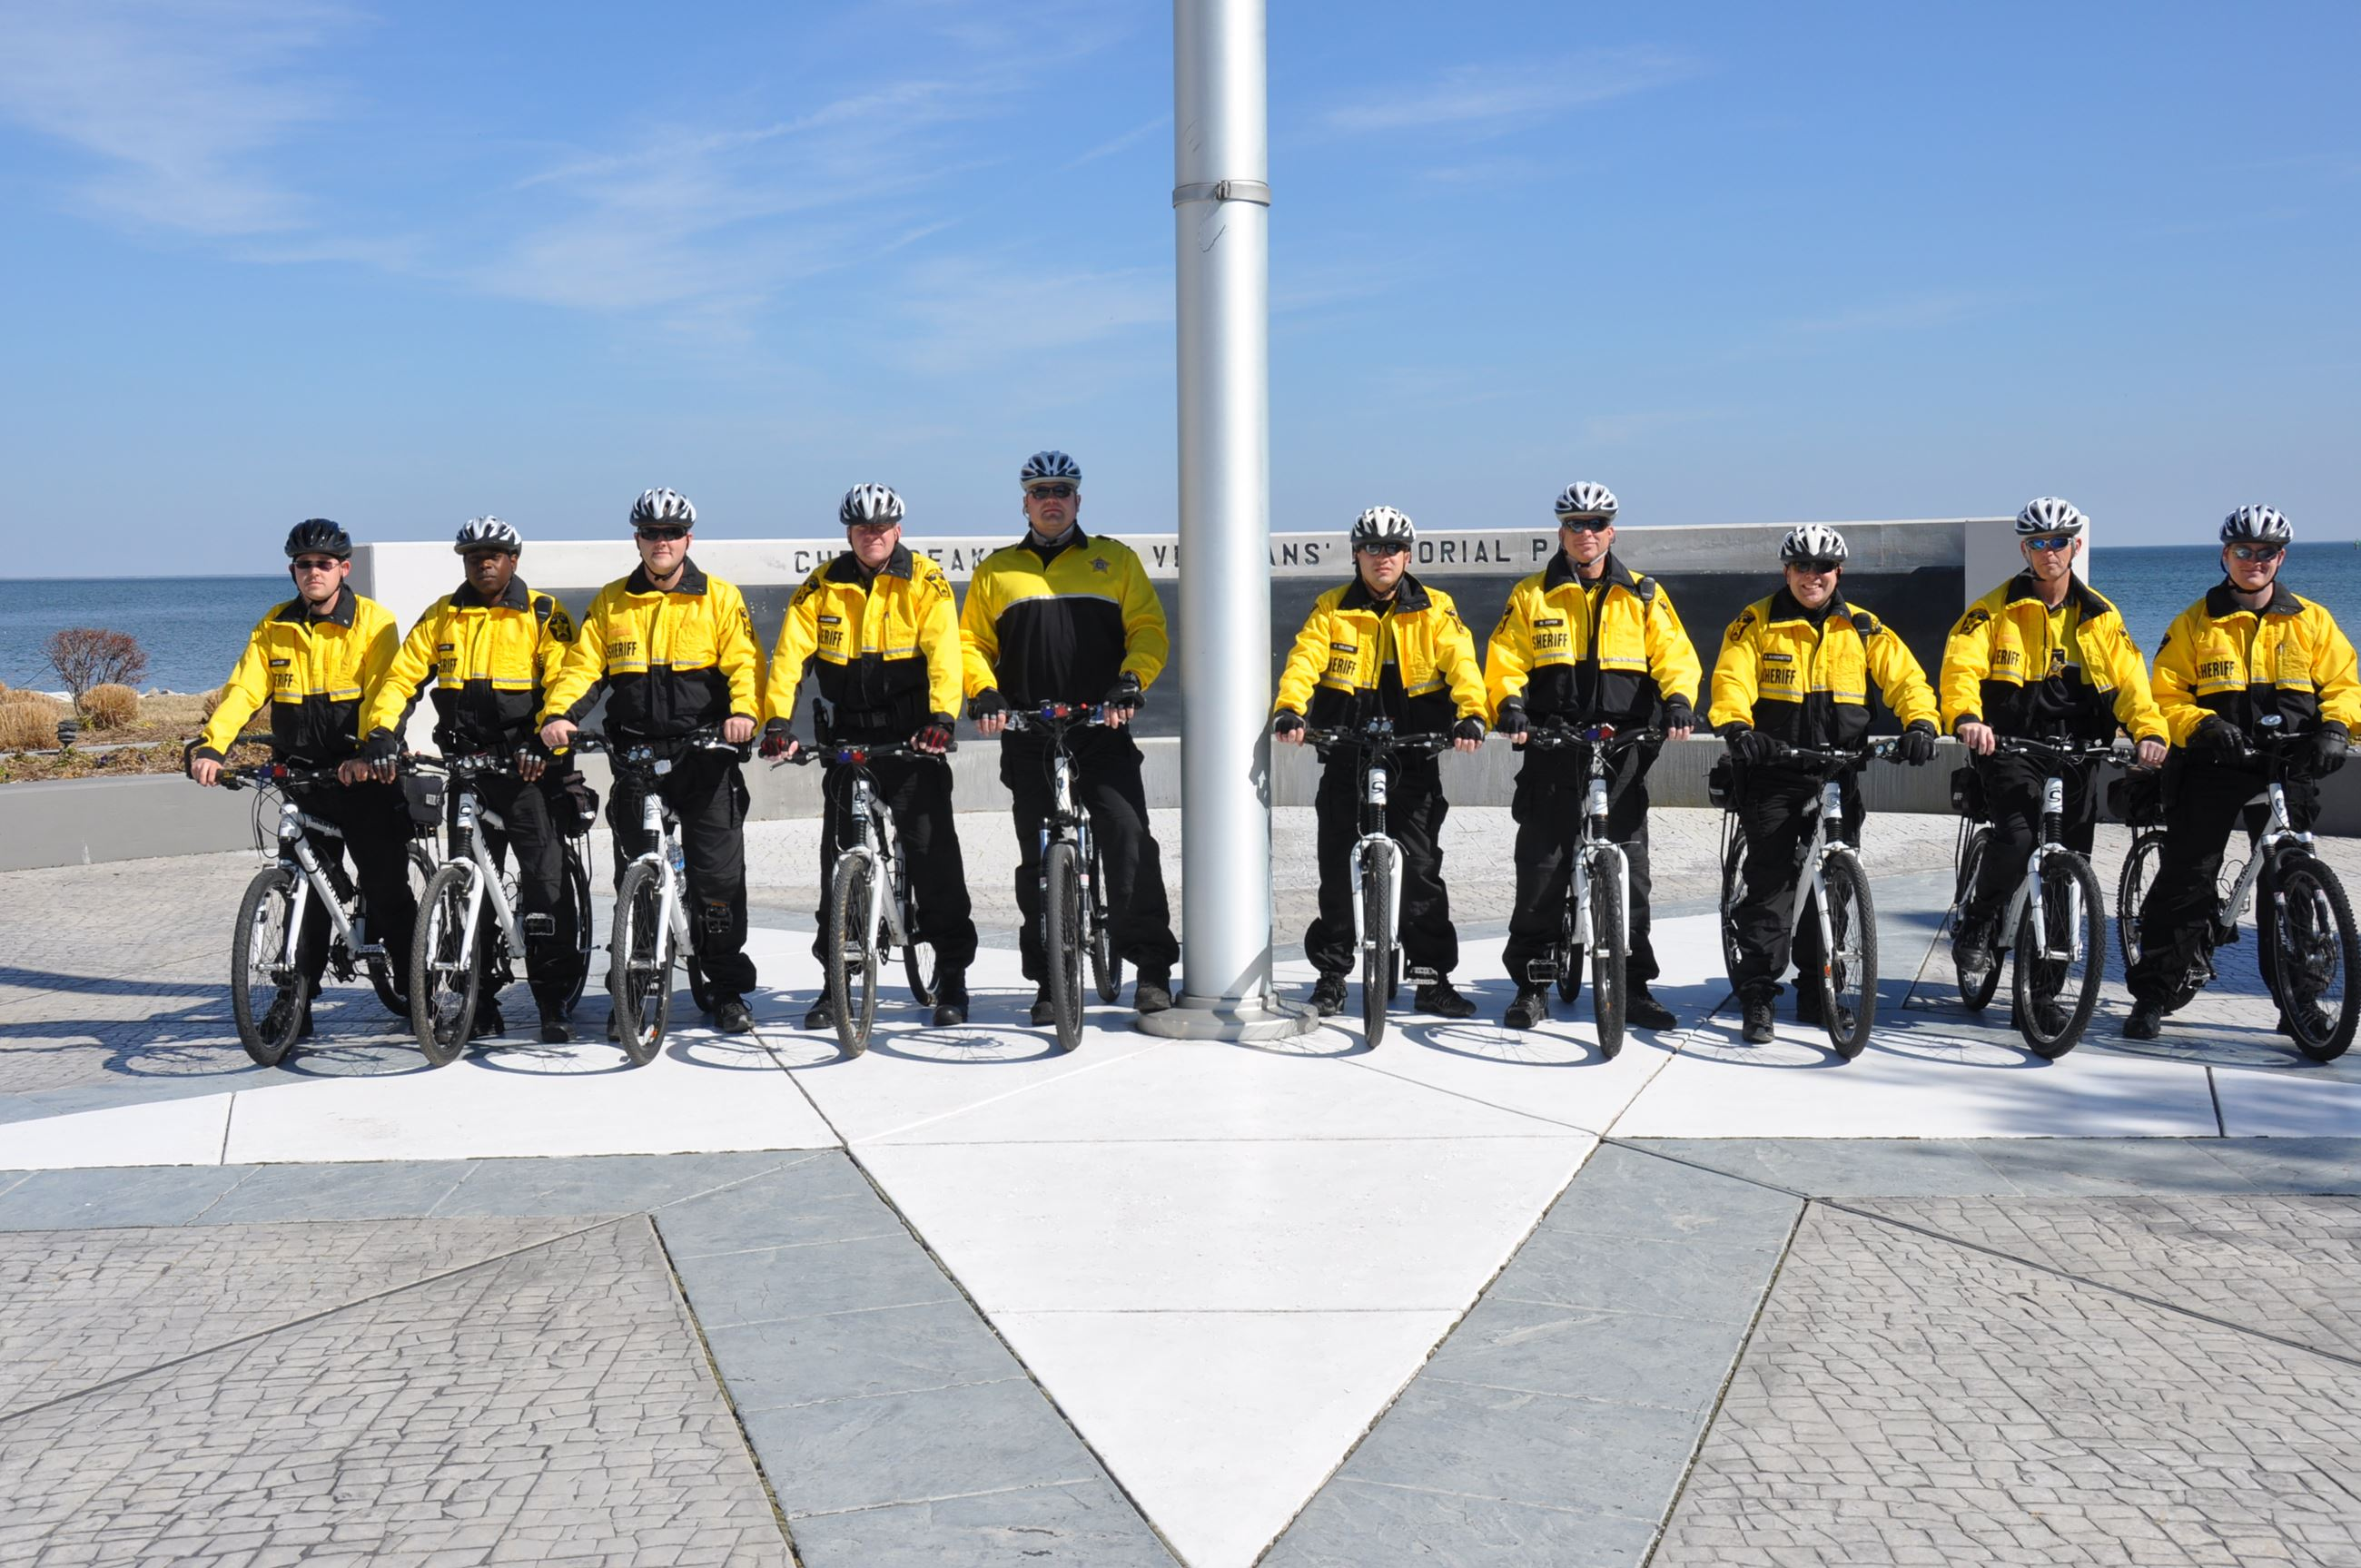 Bike Patrol Team Photo